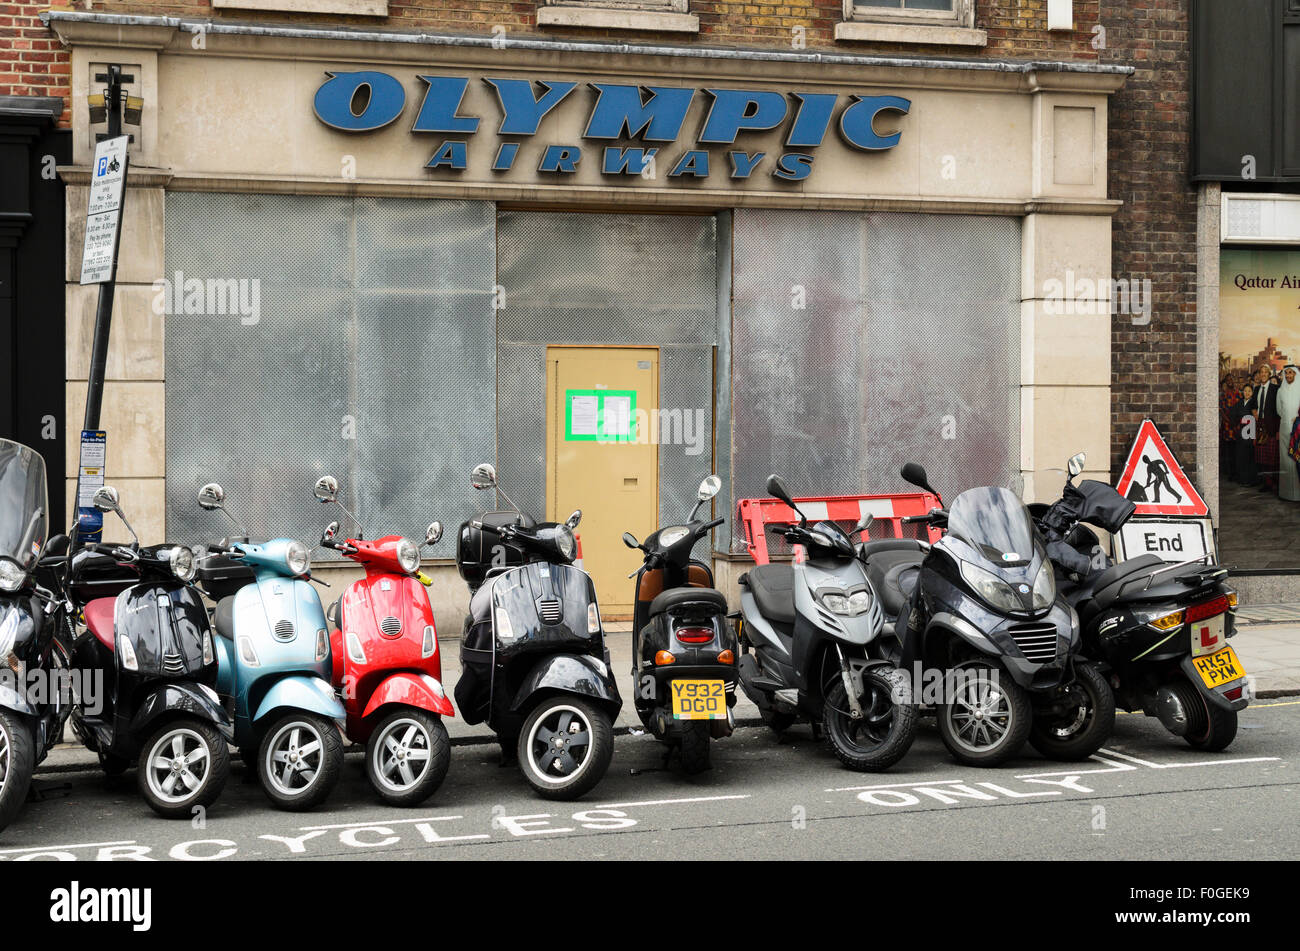 Mopeds parked outside the former Olympic Airways Office, London, England, UK. Stock Photo